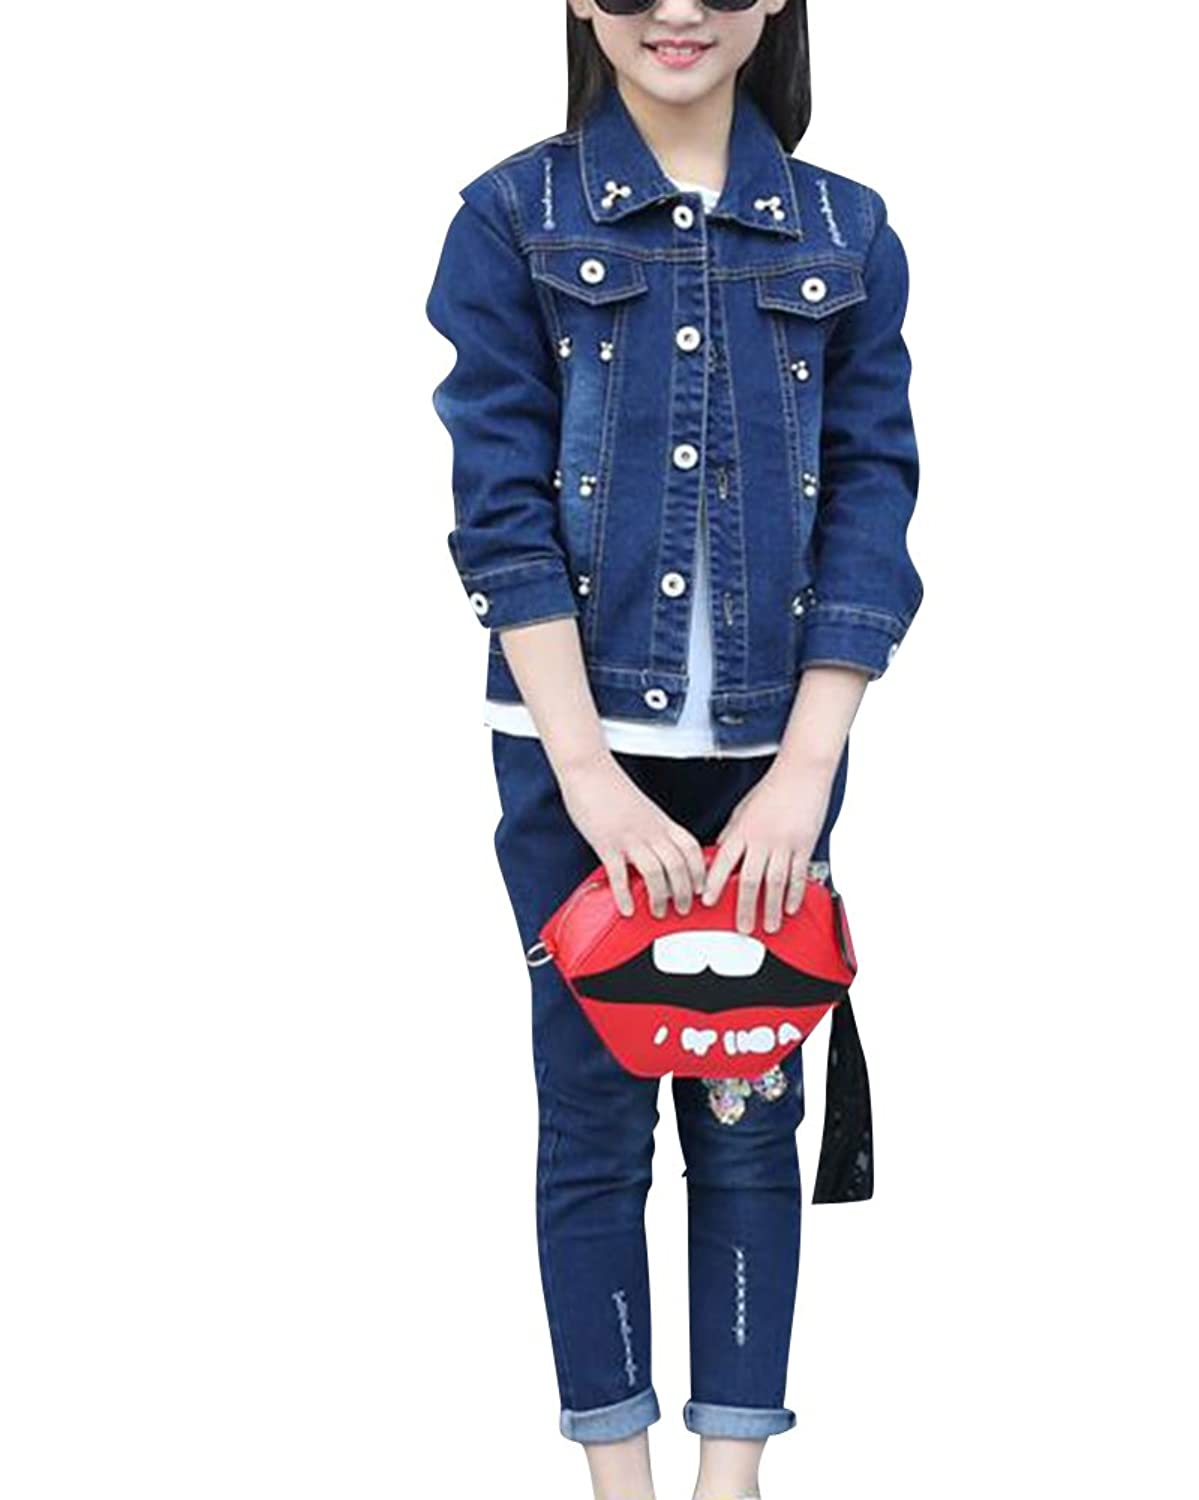 2 pcs Ensmeble Filles Enfants Papillon Paillette Manteau + Jeans Pantalons Printemps